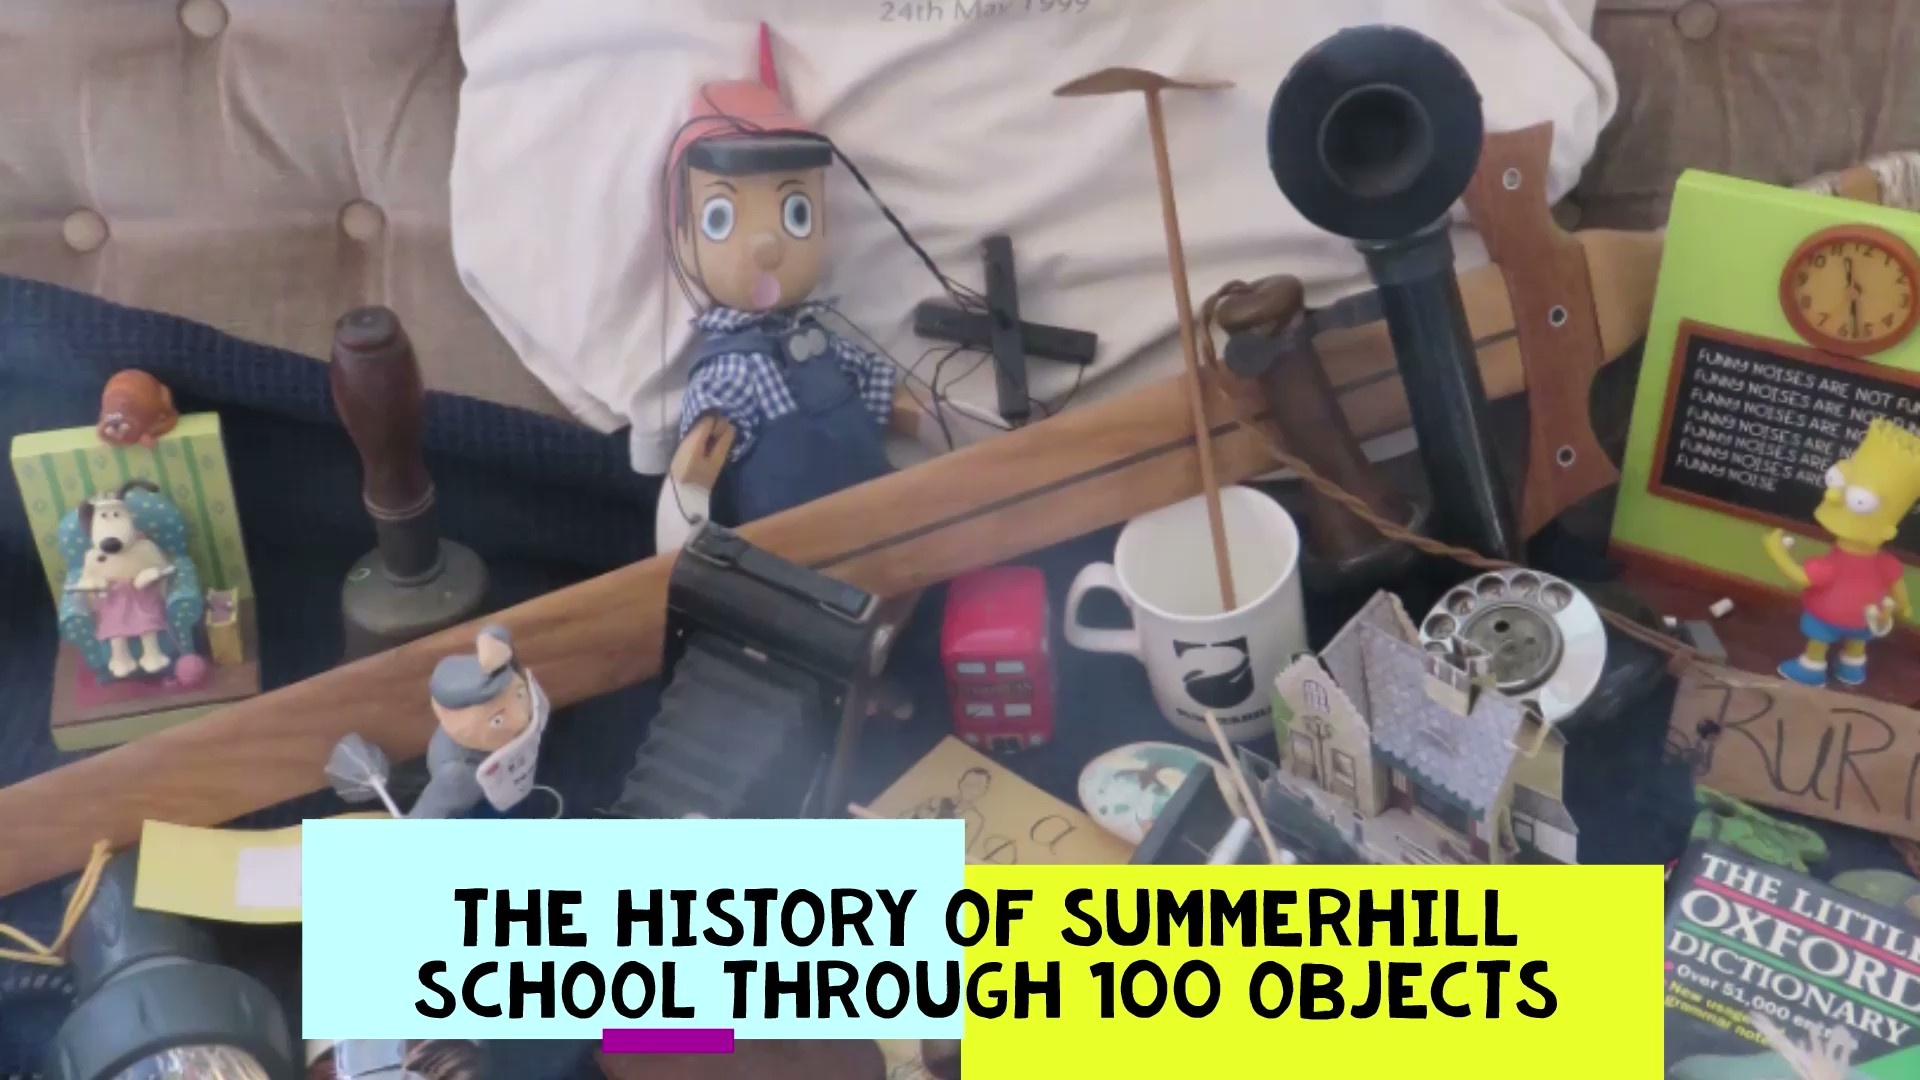 The History of Summerhill Through 100 Objects